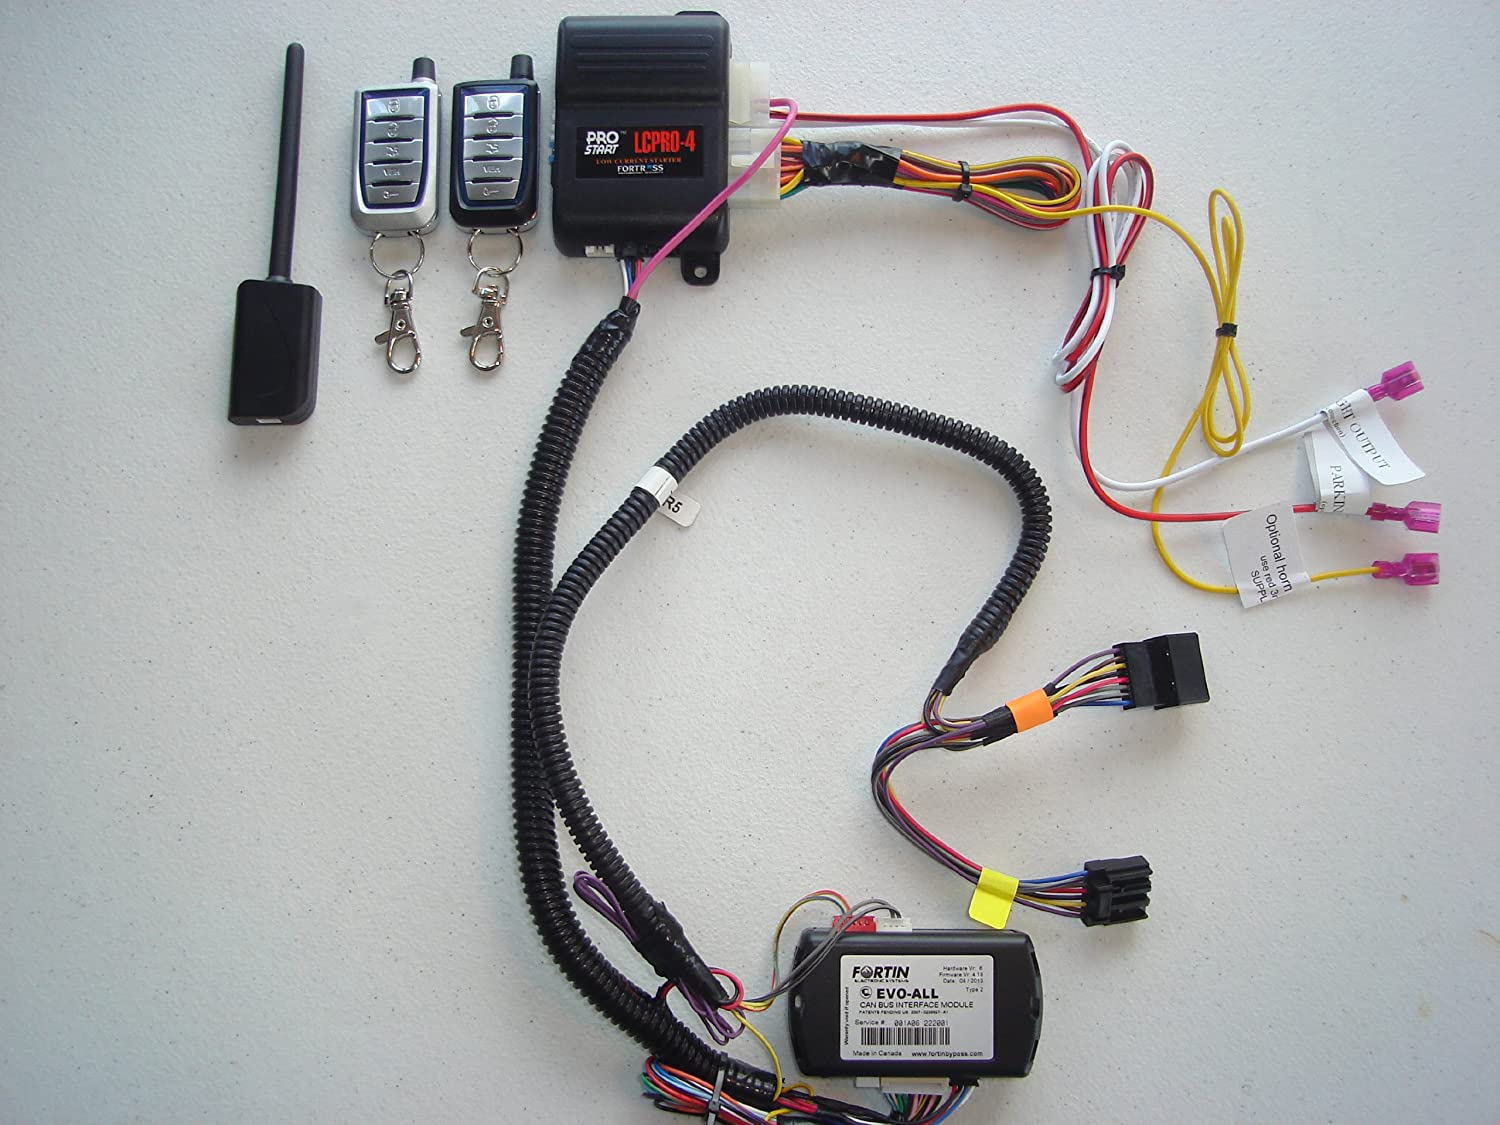 Remote Starter Kit w/ Keyless Entry for Jeep Compass - True Plug & Play Installation